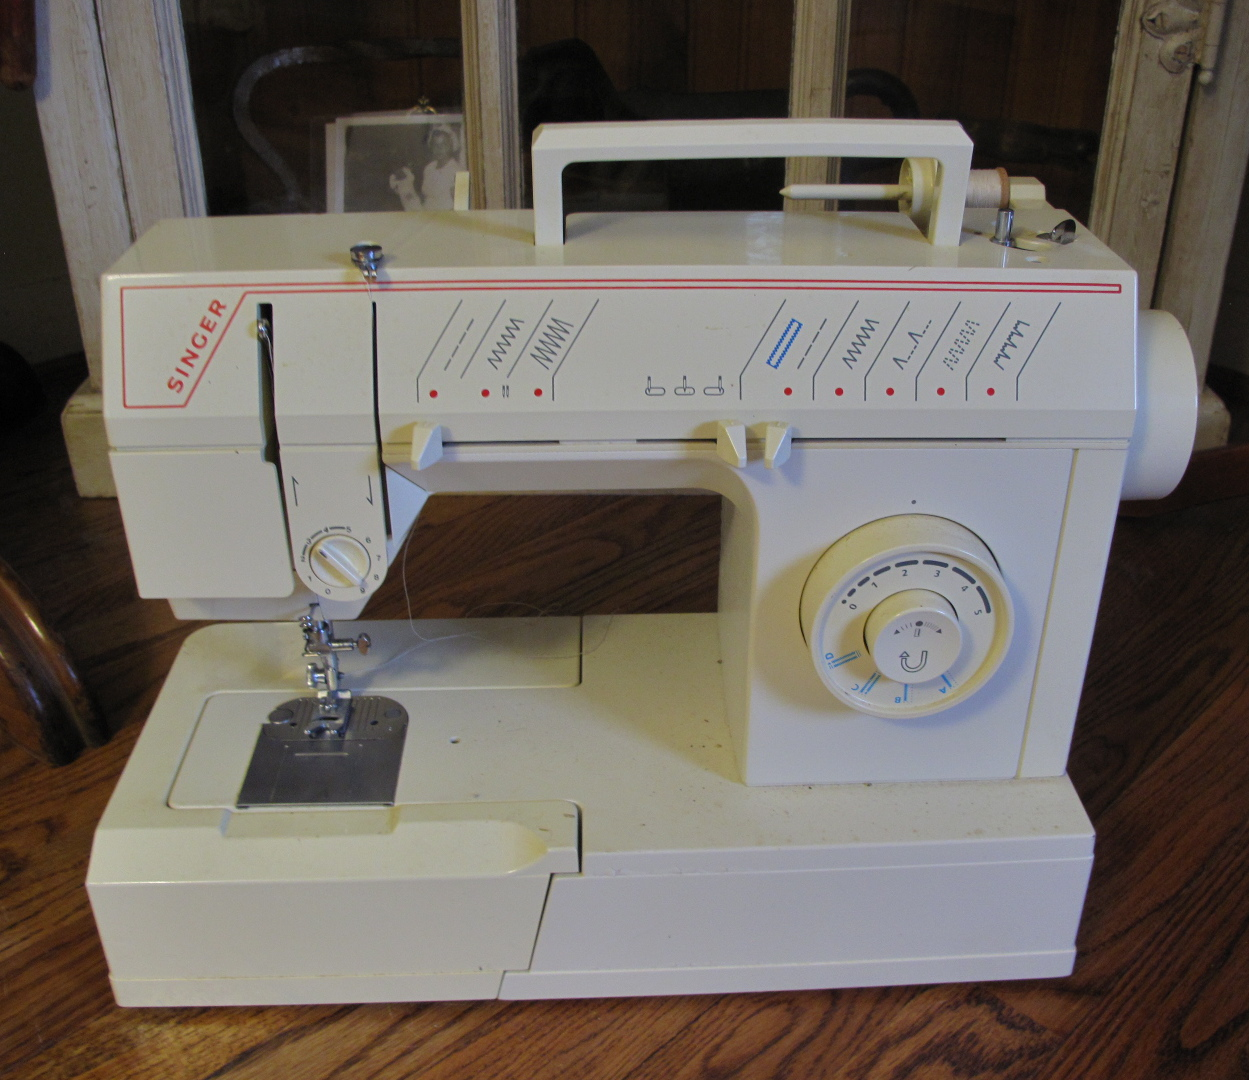 resweater does anyone have this sewing machine